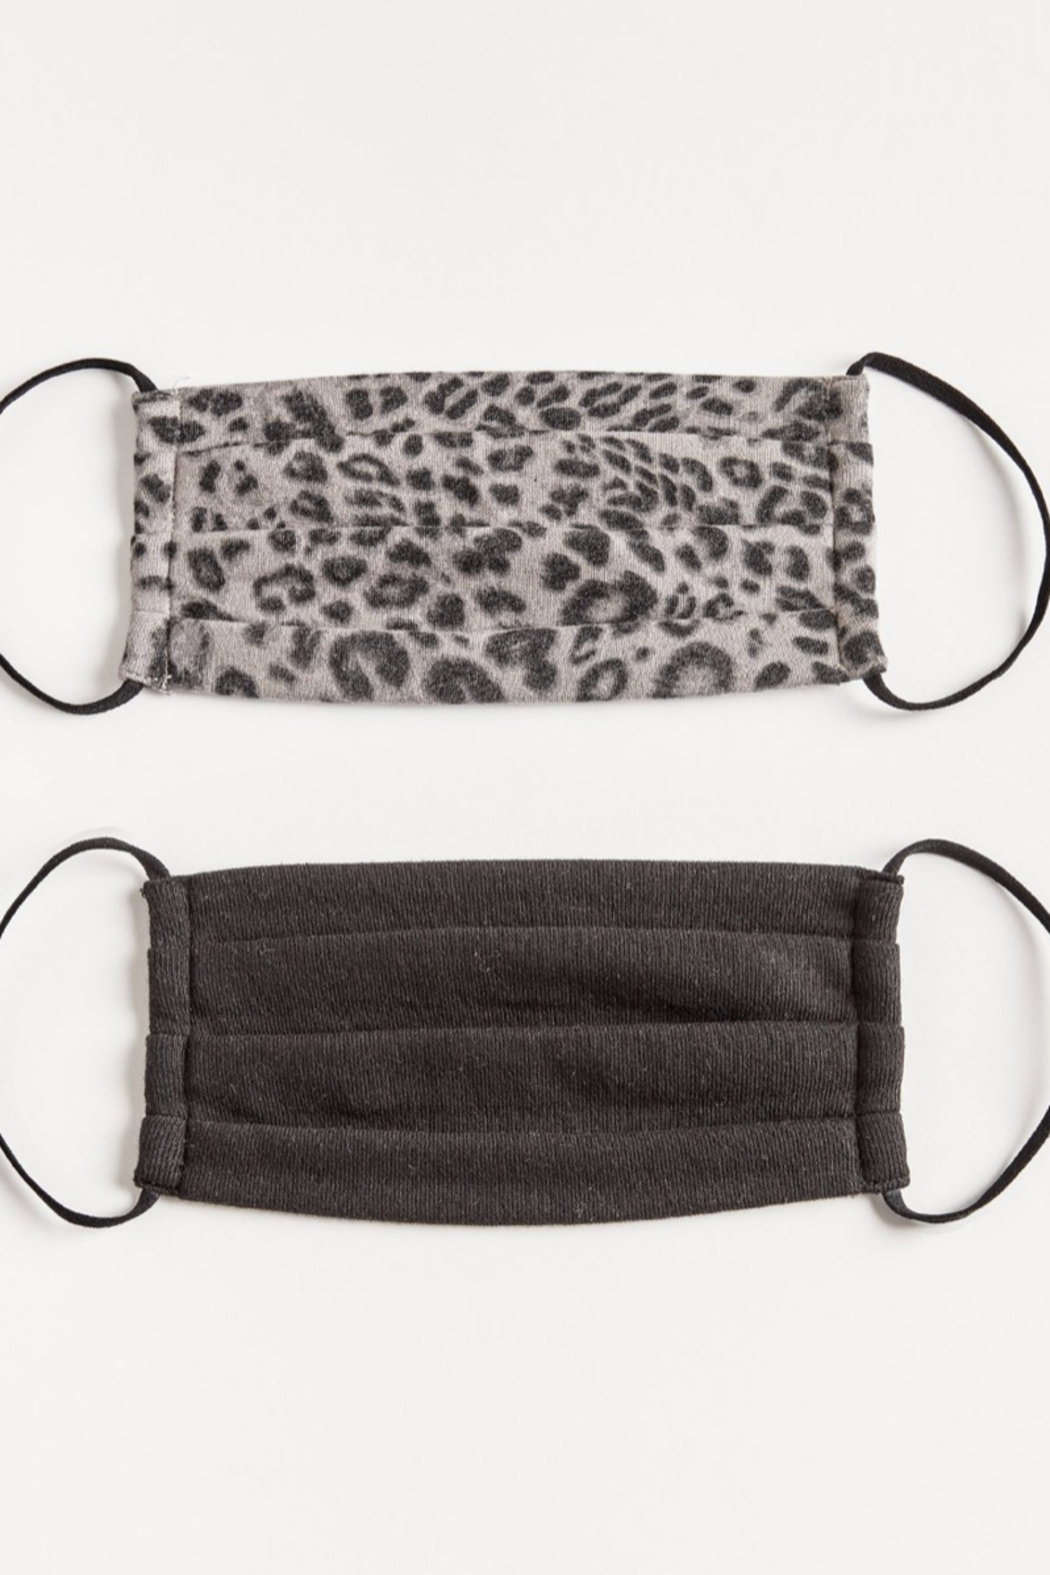 Allie & Chica Kids Grey Leopard & Black Facemasks (2 pack) - Main Image